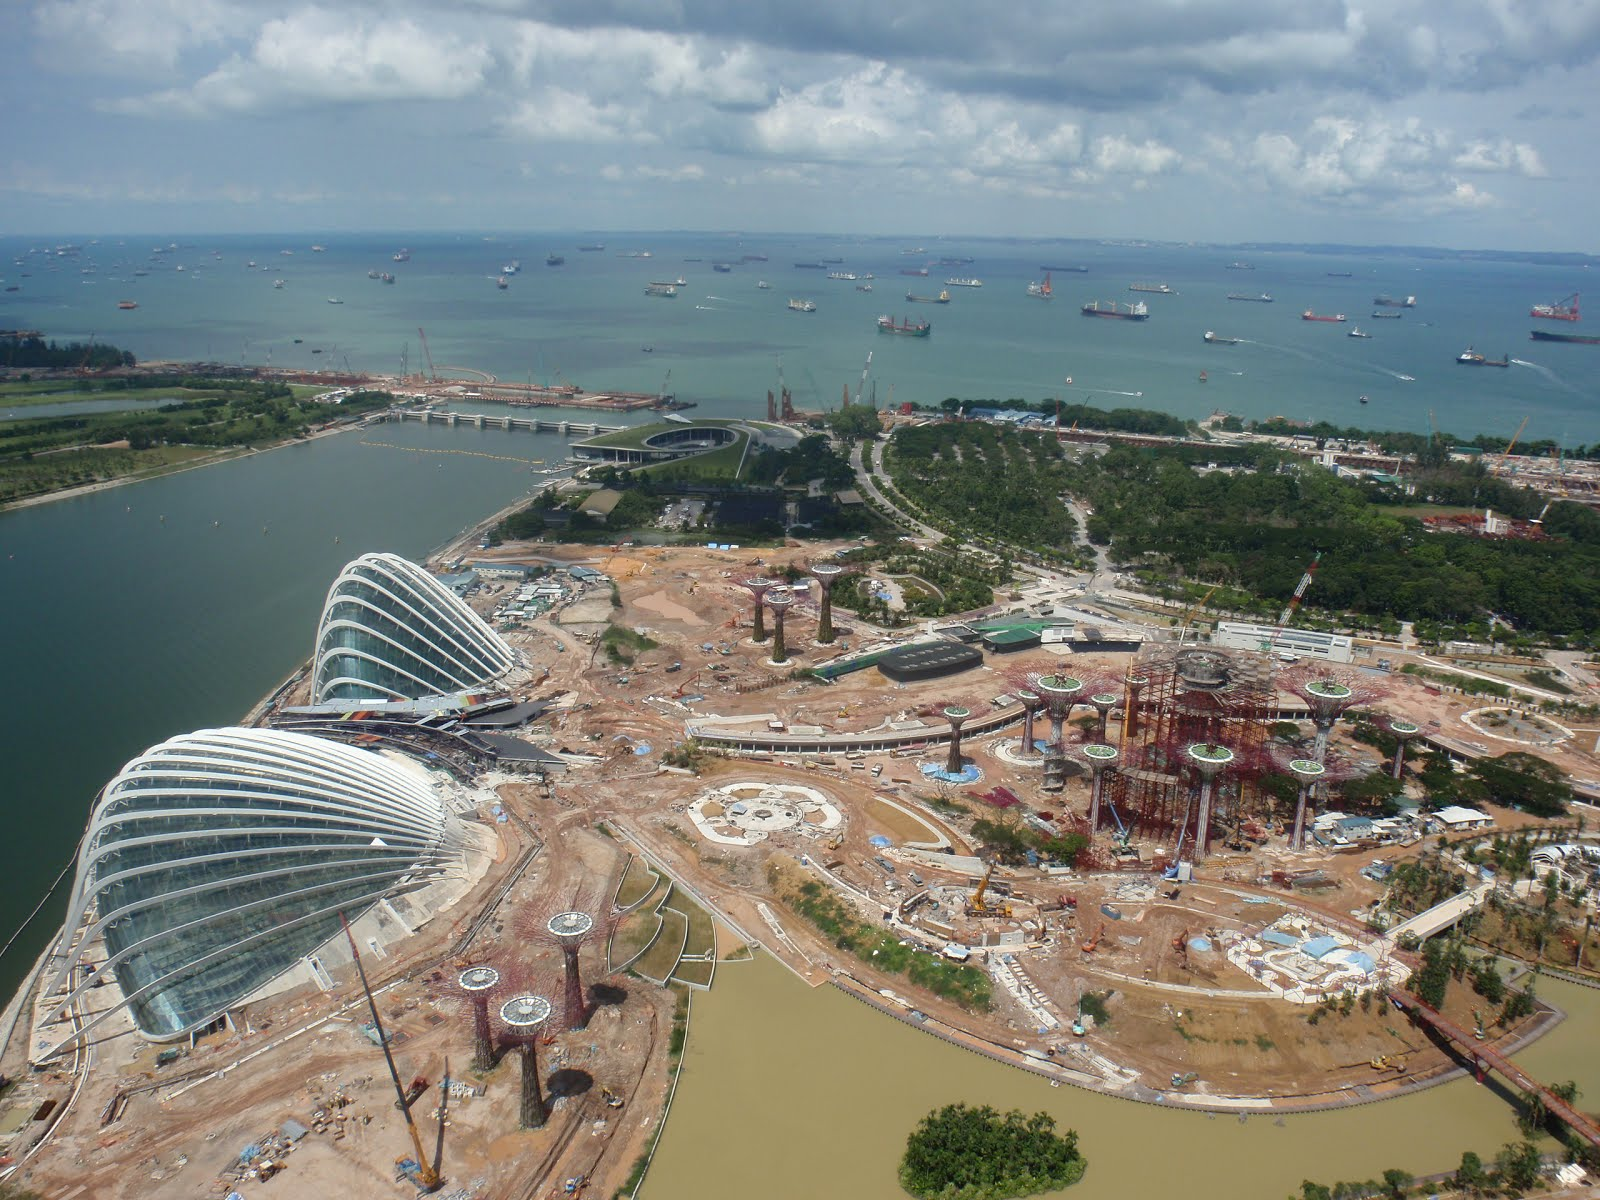 singapore will open construction jobs for the least priority singapore will open construction jobs for the least priority and sri lanka workers